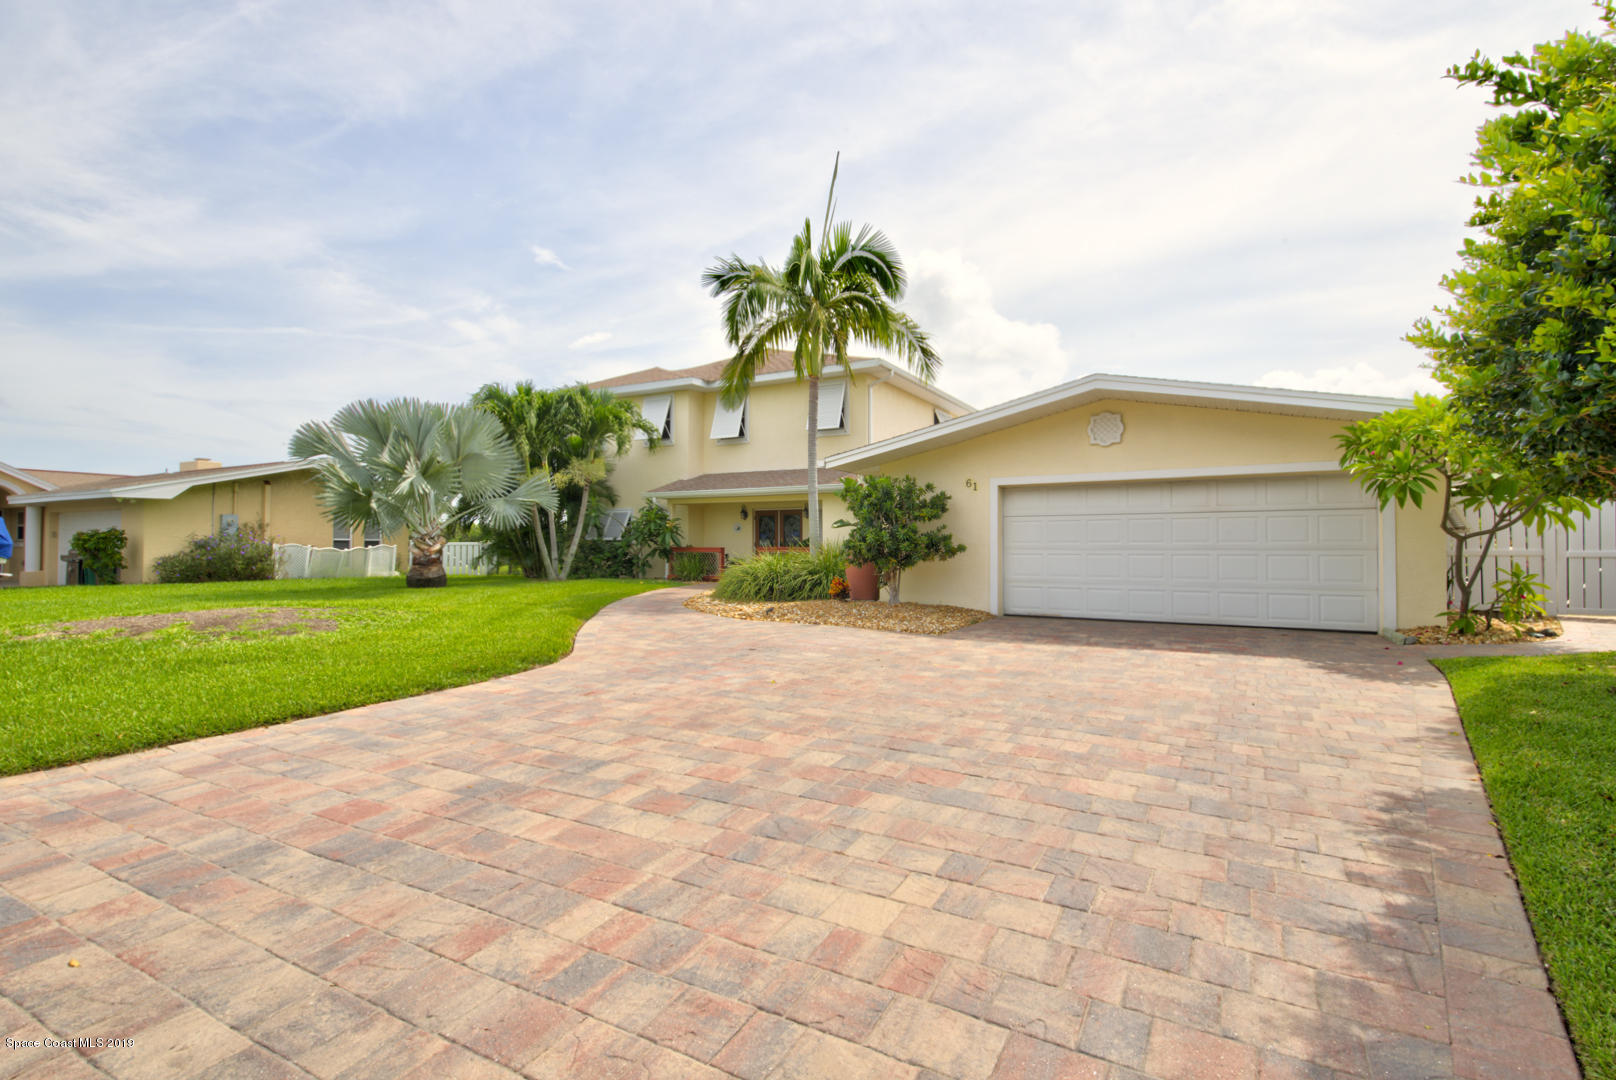 Groovy Cocoa Beach Homes For Sale Treasure Coast Sothebys Home Interior And Landscaping Ologienasavecom